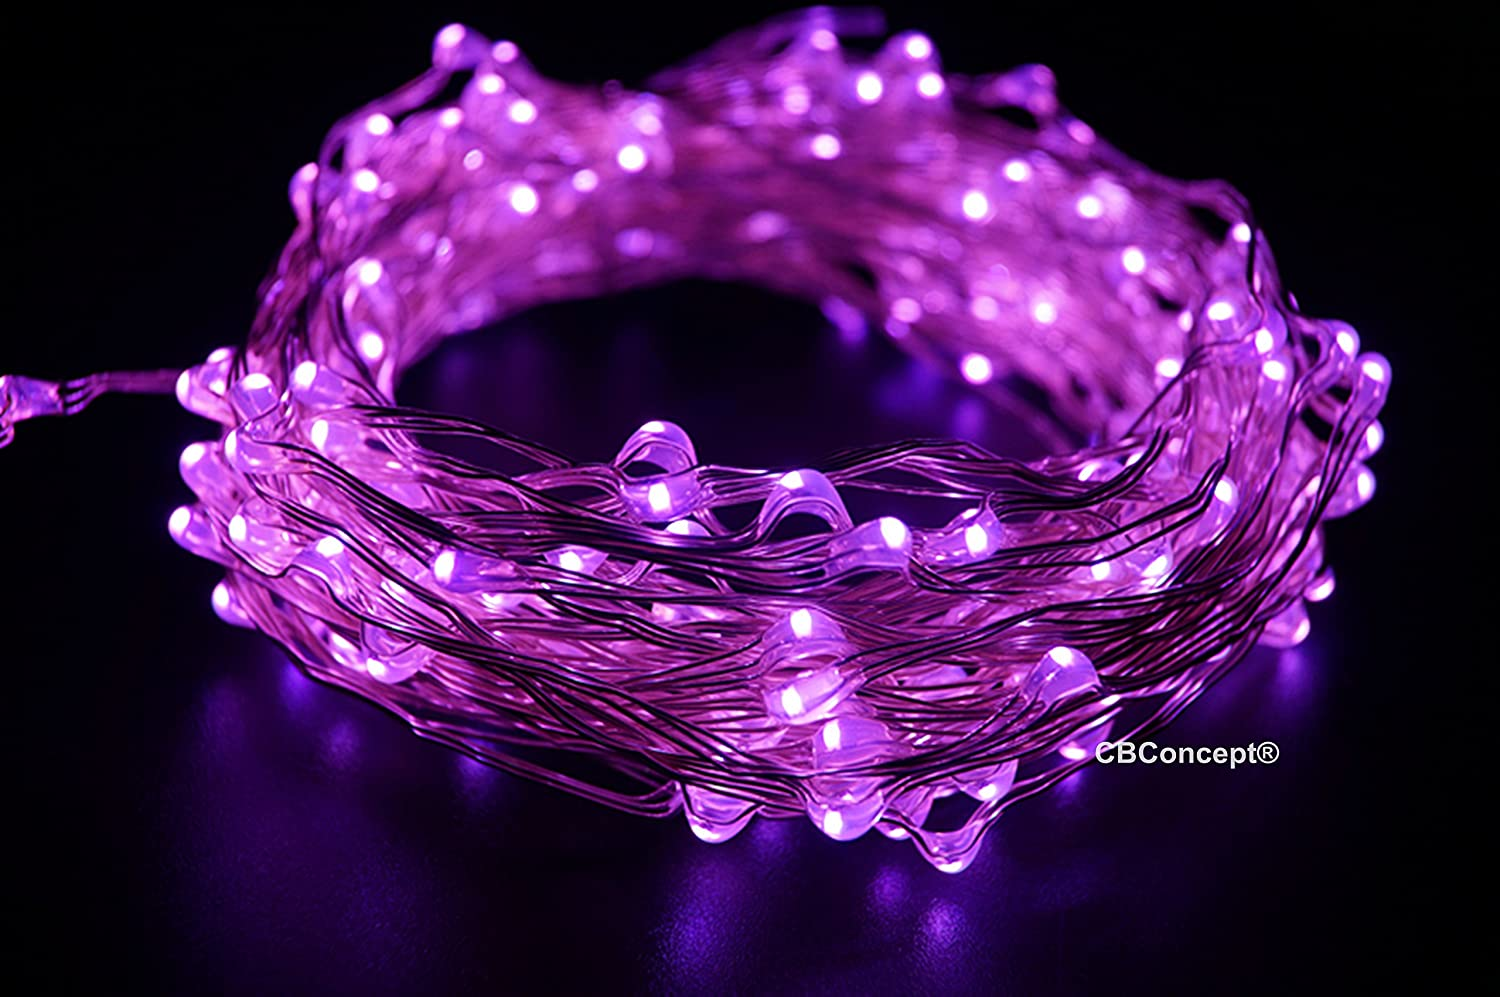 CBconcept LC100-10M-PU LED Starry String Lights on Copper Wire,Includes UL Listed Power Adapter,33-Feet, 100 LED's, Purple